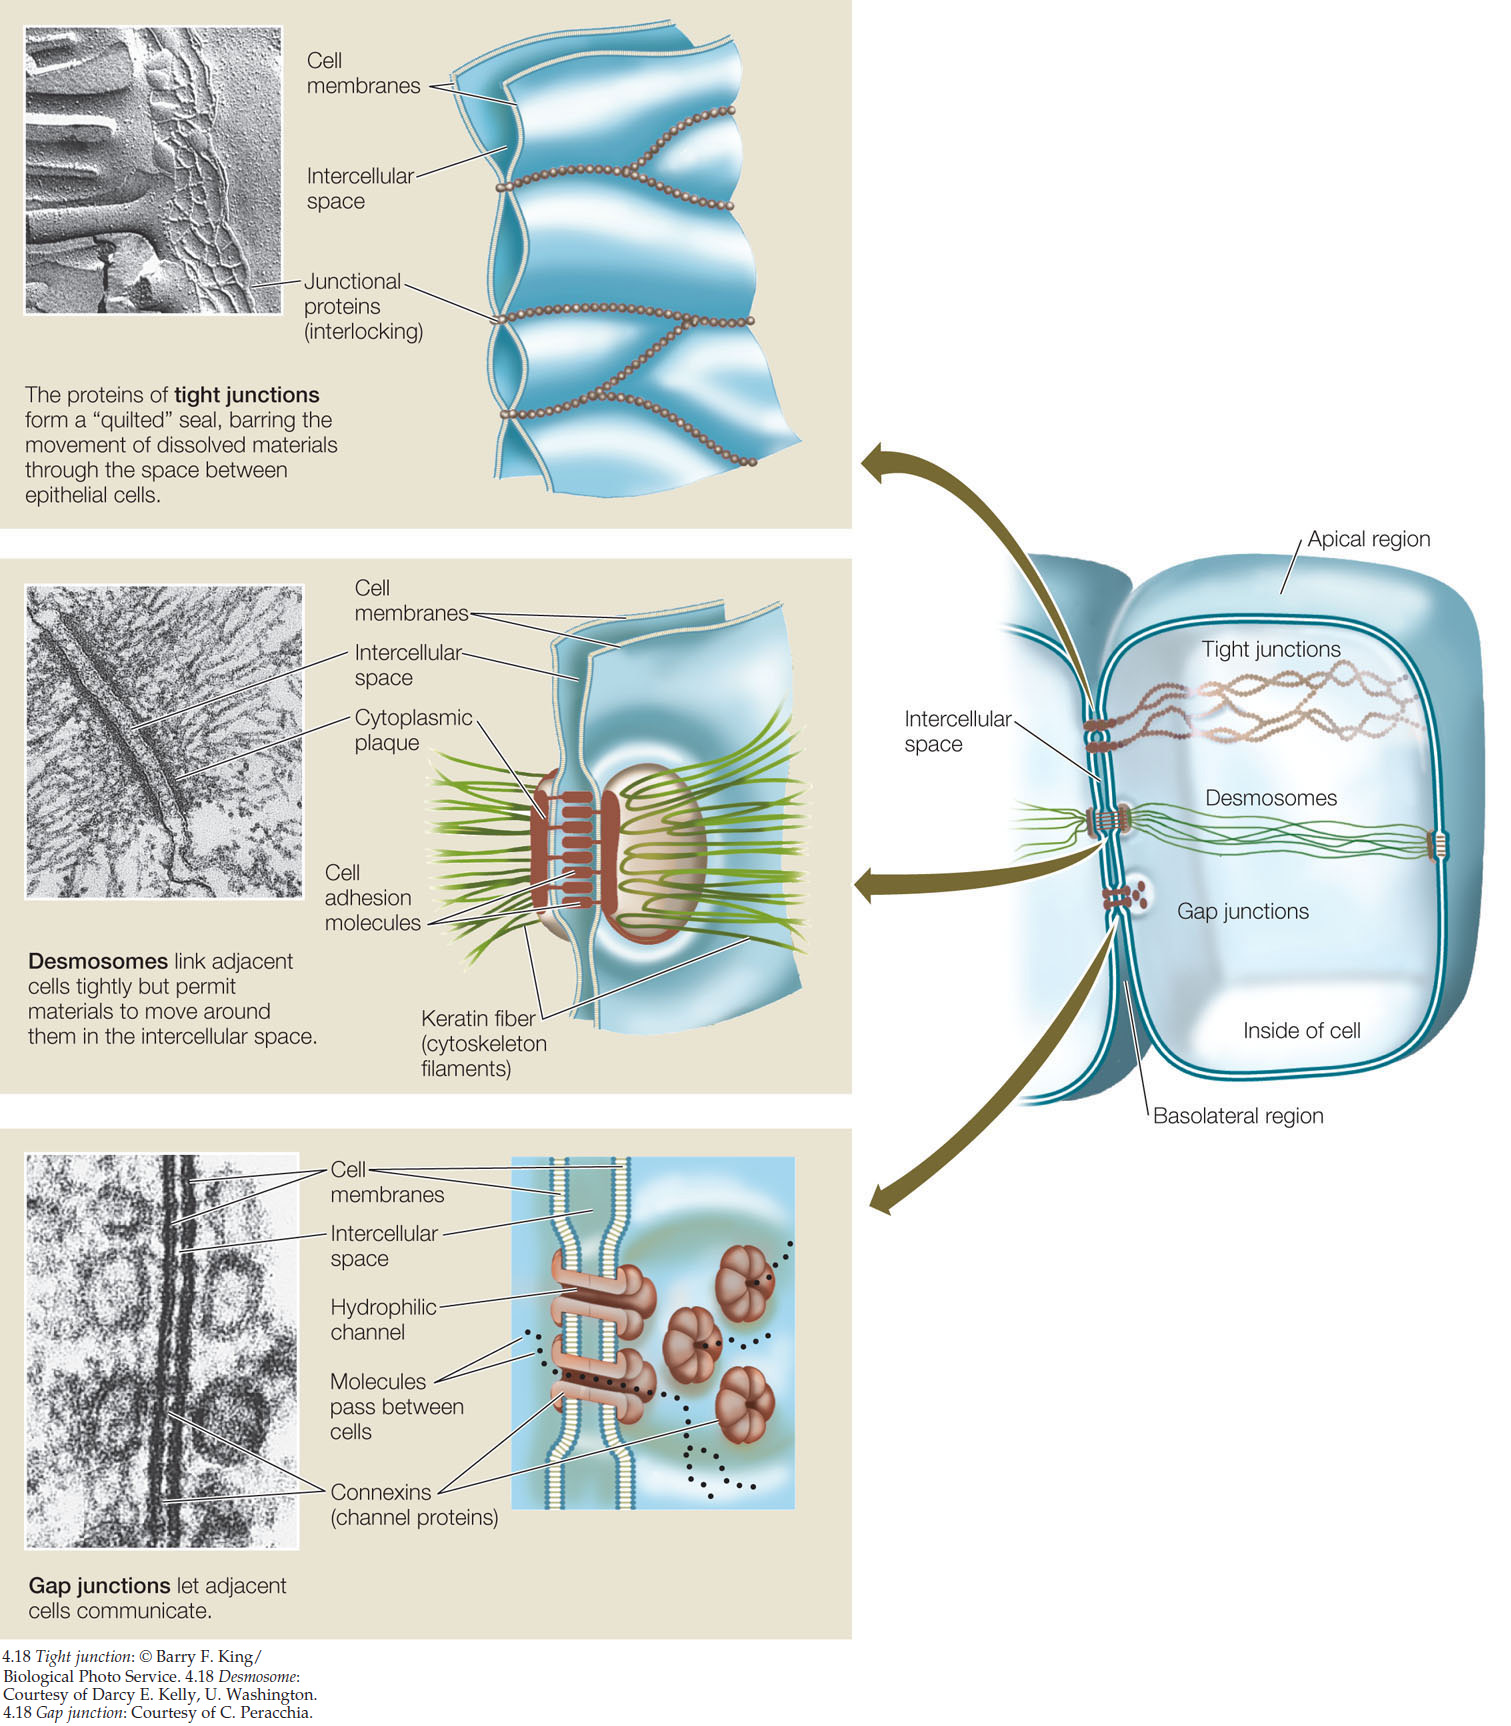 type of cell junction anchors adjacent cells and resist thai separates during contractile activities Those that form during cytokinesis, as strands of endoplasmic reticulum are trapped in the new cell wall being formed between daughter cells , are called primary plasmodesmata  those that form in the absence of cell division, during cell wall expansion, are called secondary plasmodesmata the mechanism by which the latter are formed is not.